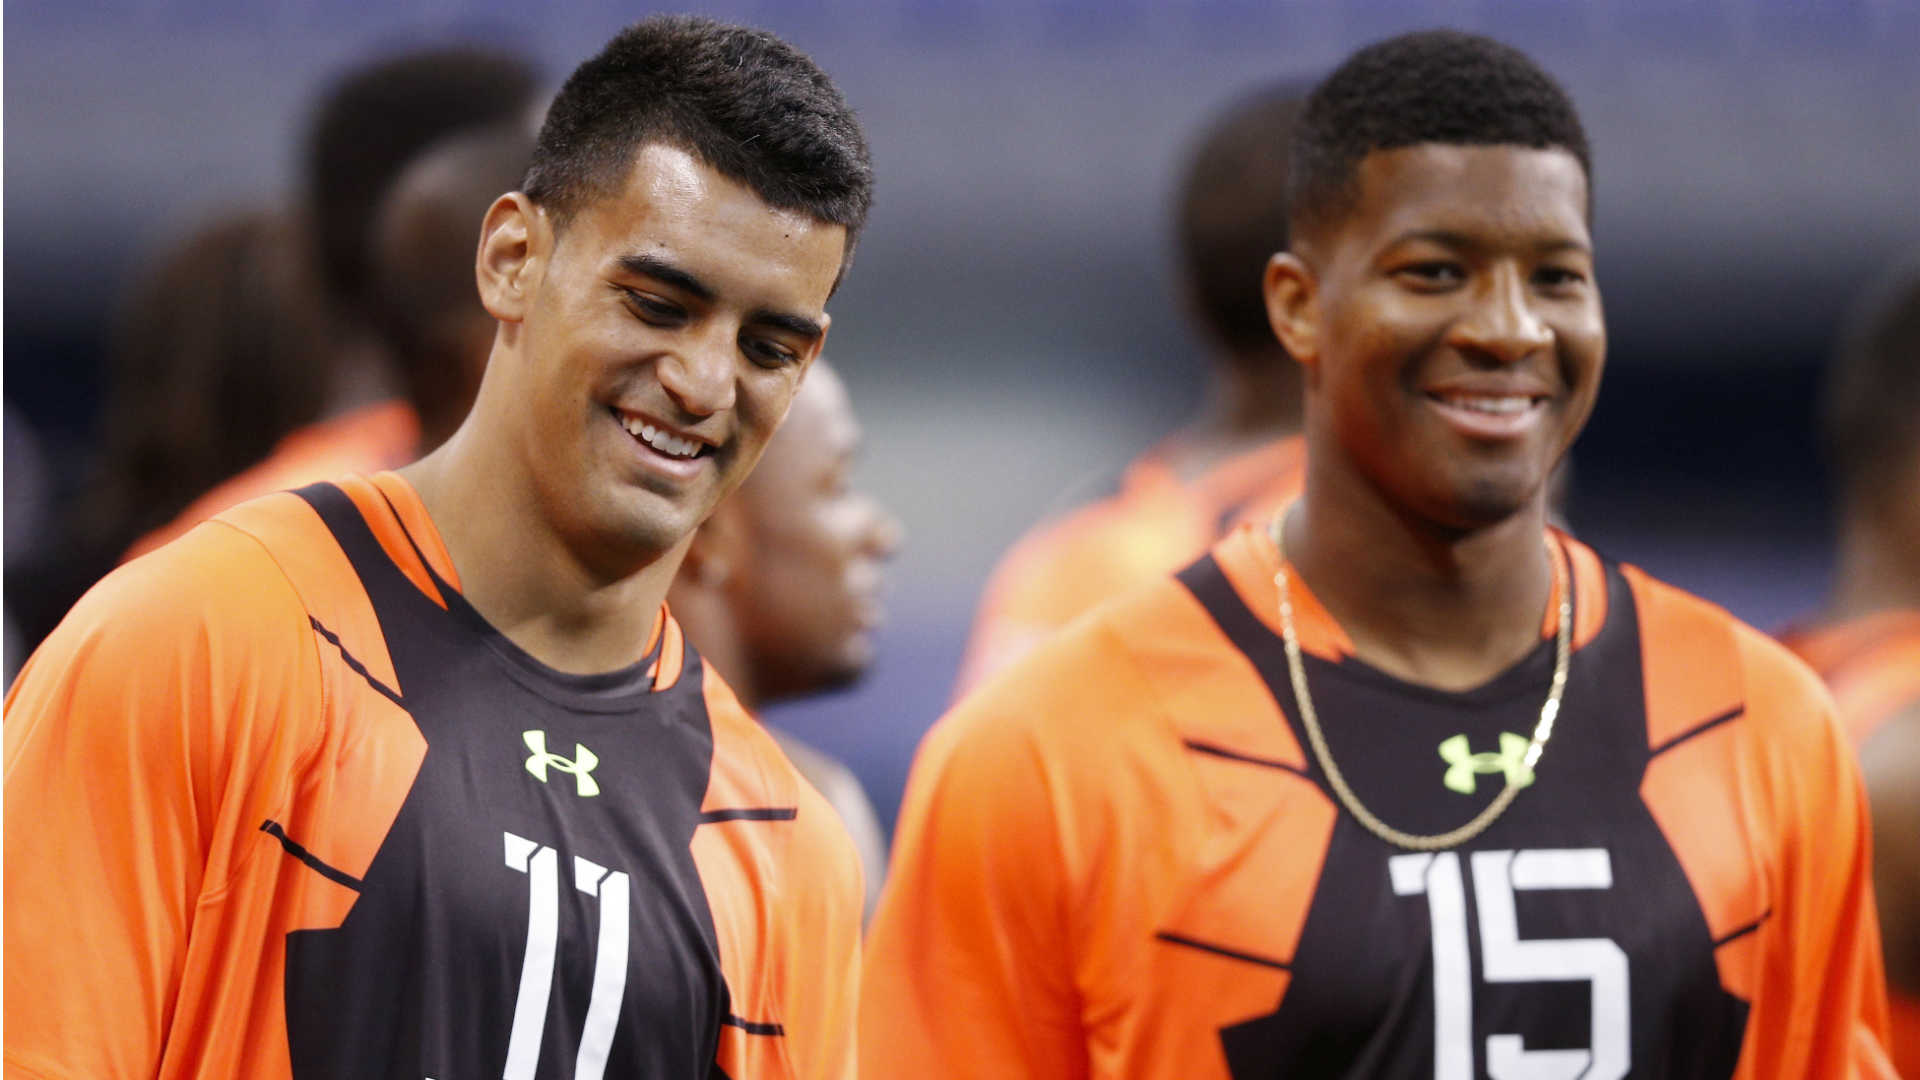 NFL Draft props and mock odds – Focus turns to Mariota, running backs